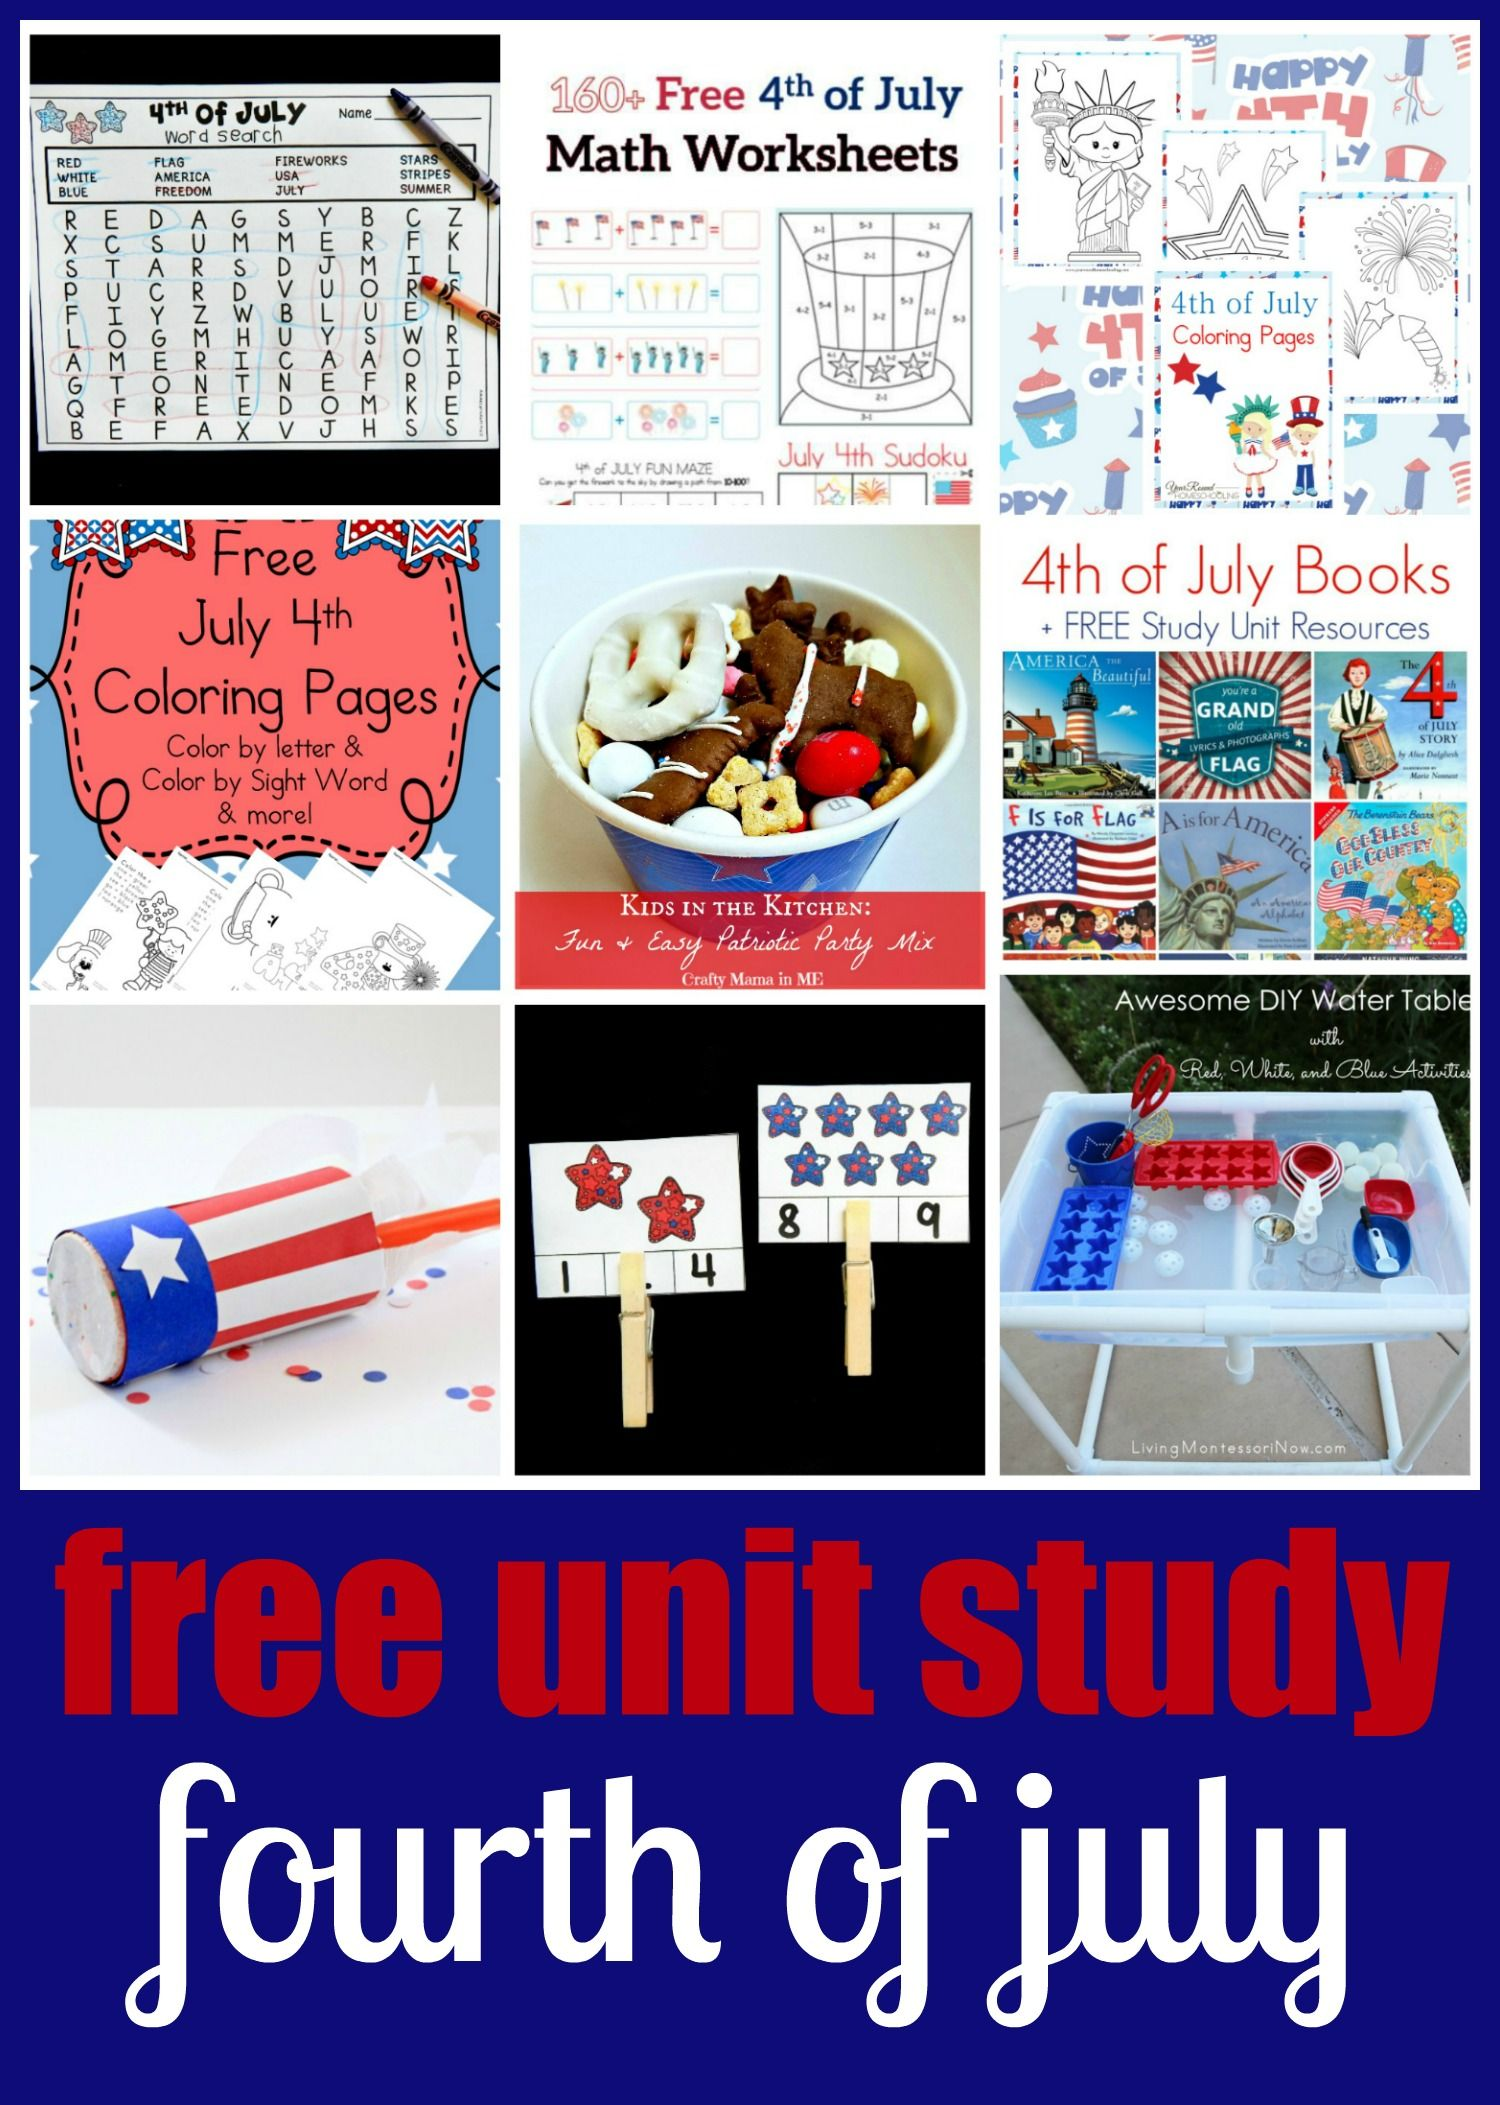 Patriotic Stars Count And Clip Cards Study Unit Activities For Kids July Crafts [ 2105 x 1500 Pixel ]